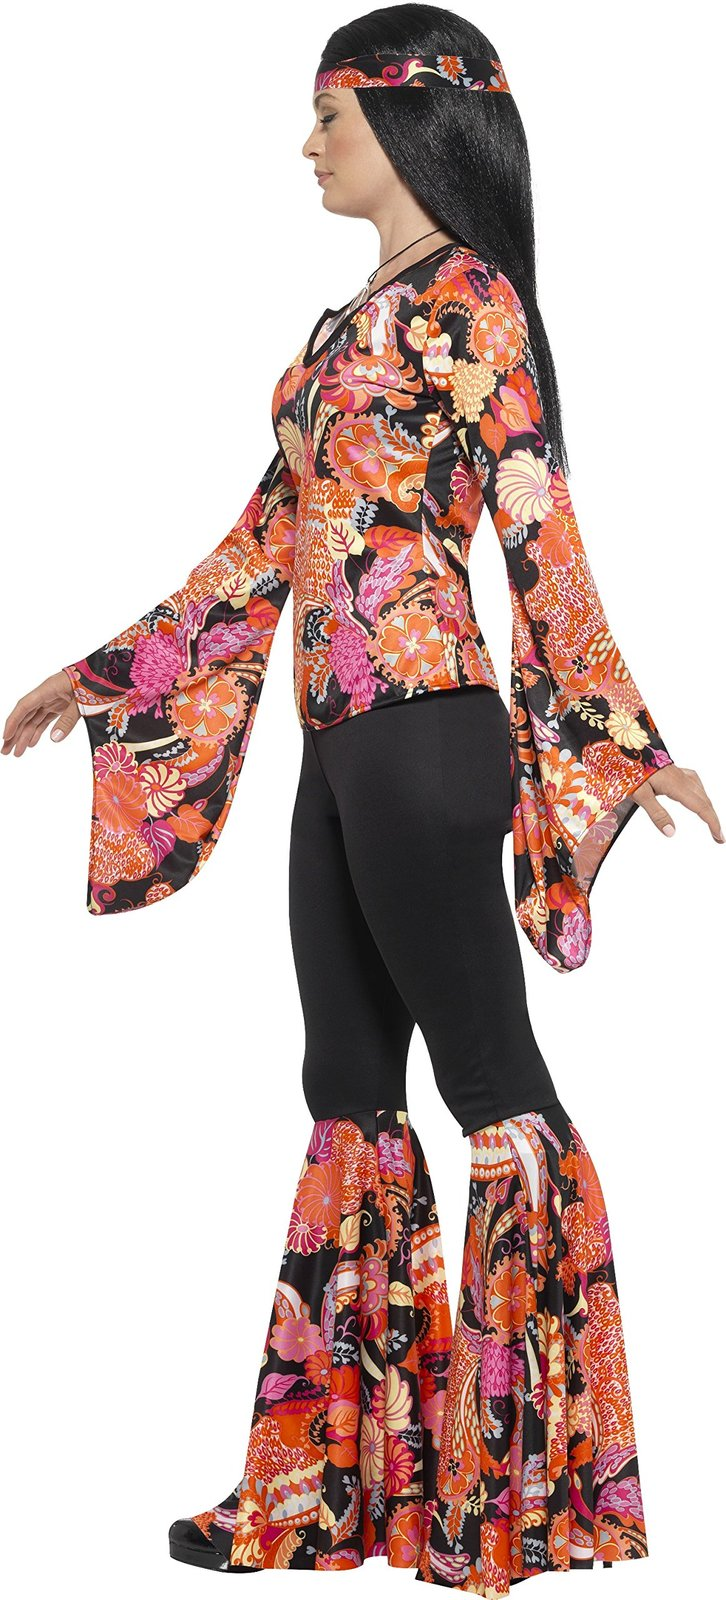 Smiffys Women's 1960's Willow The Hippie Costume, Top, pants, Headscarf and